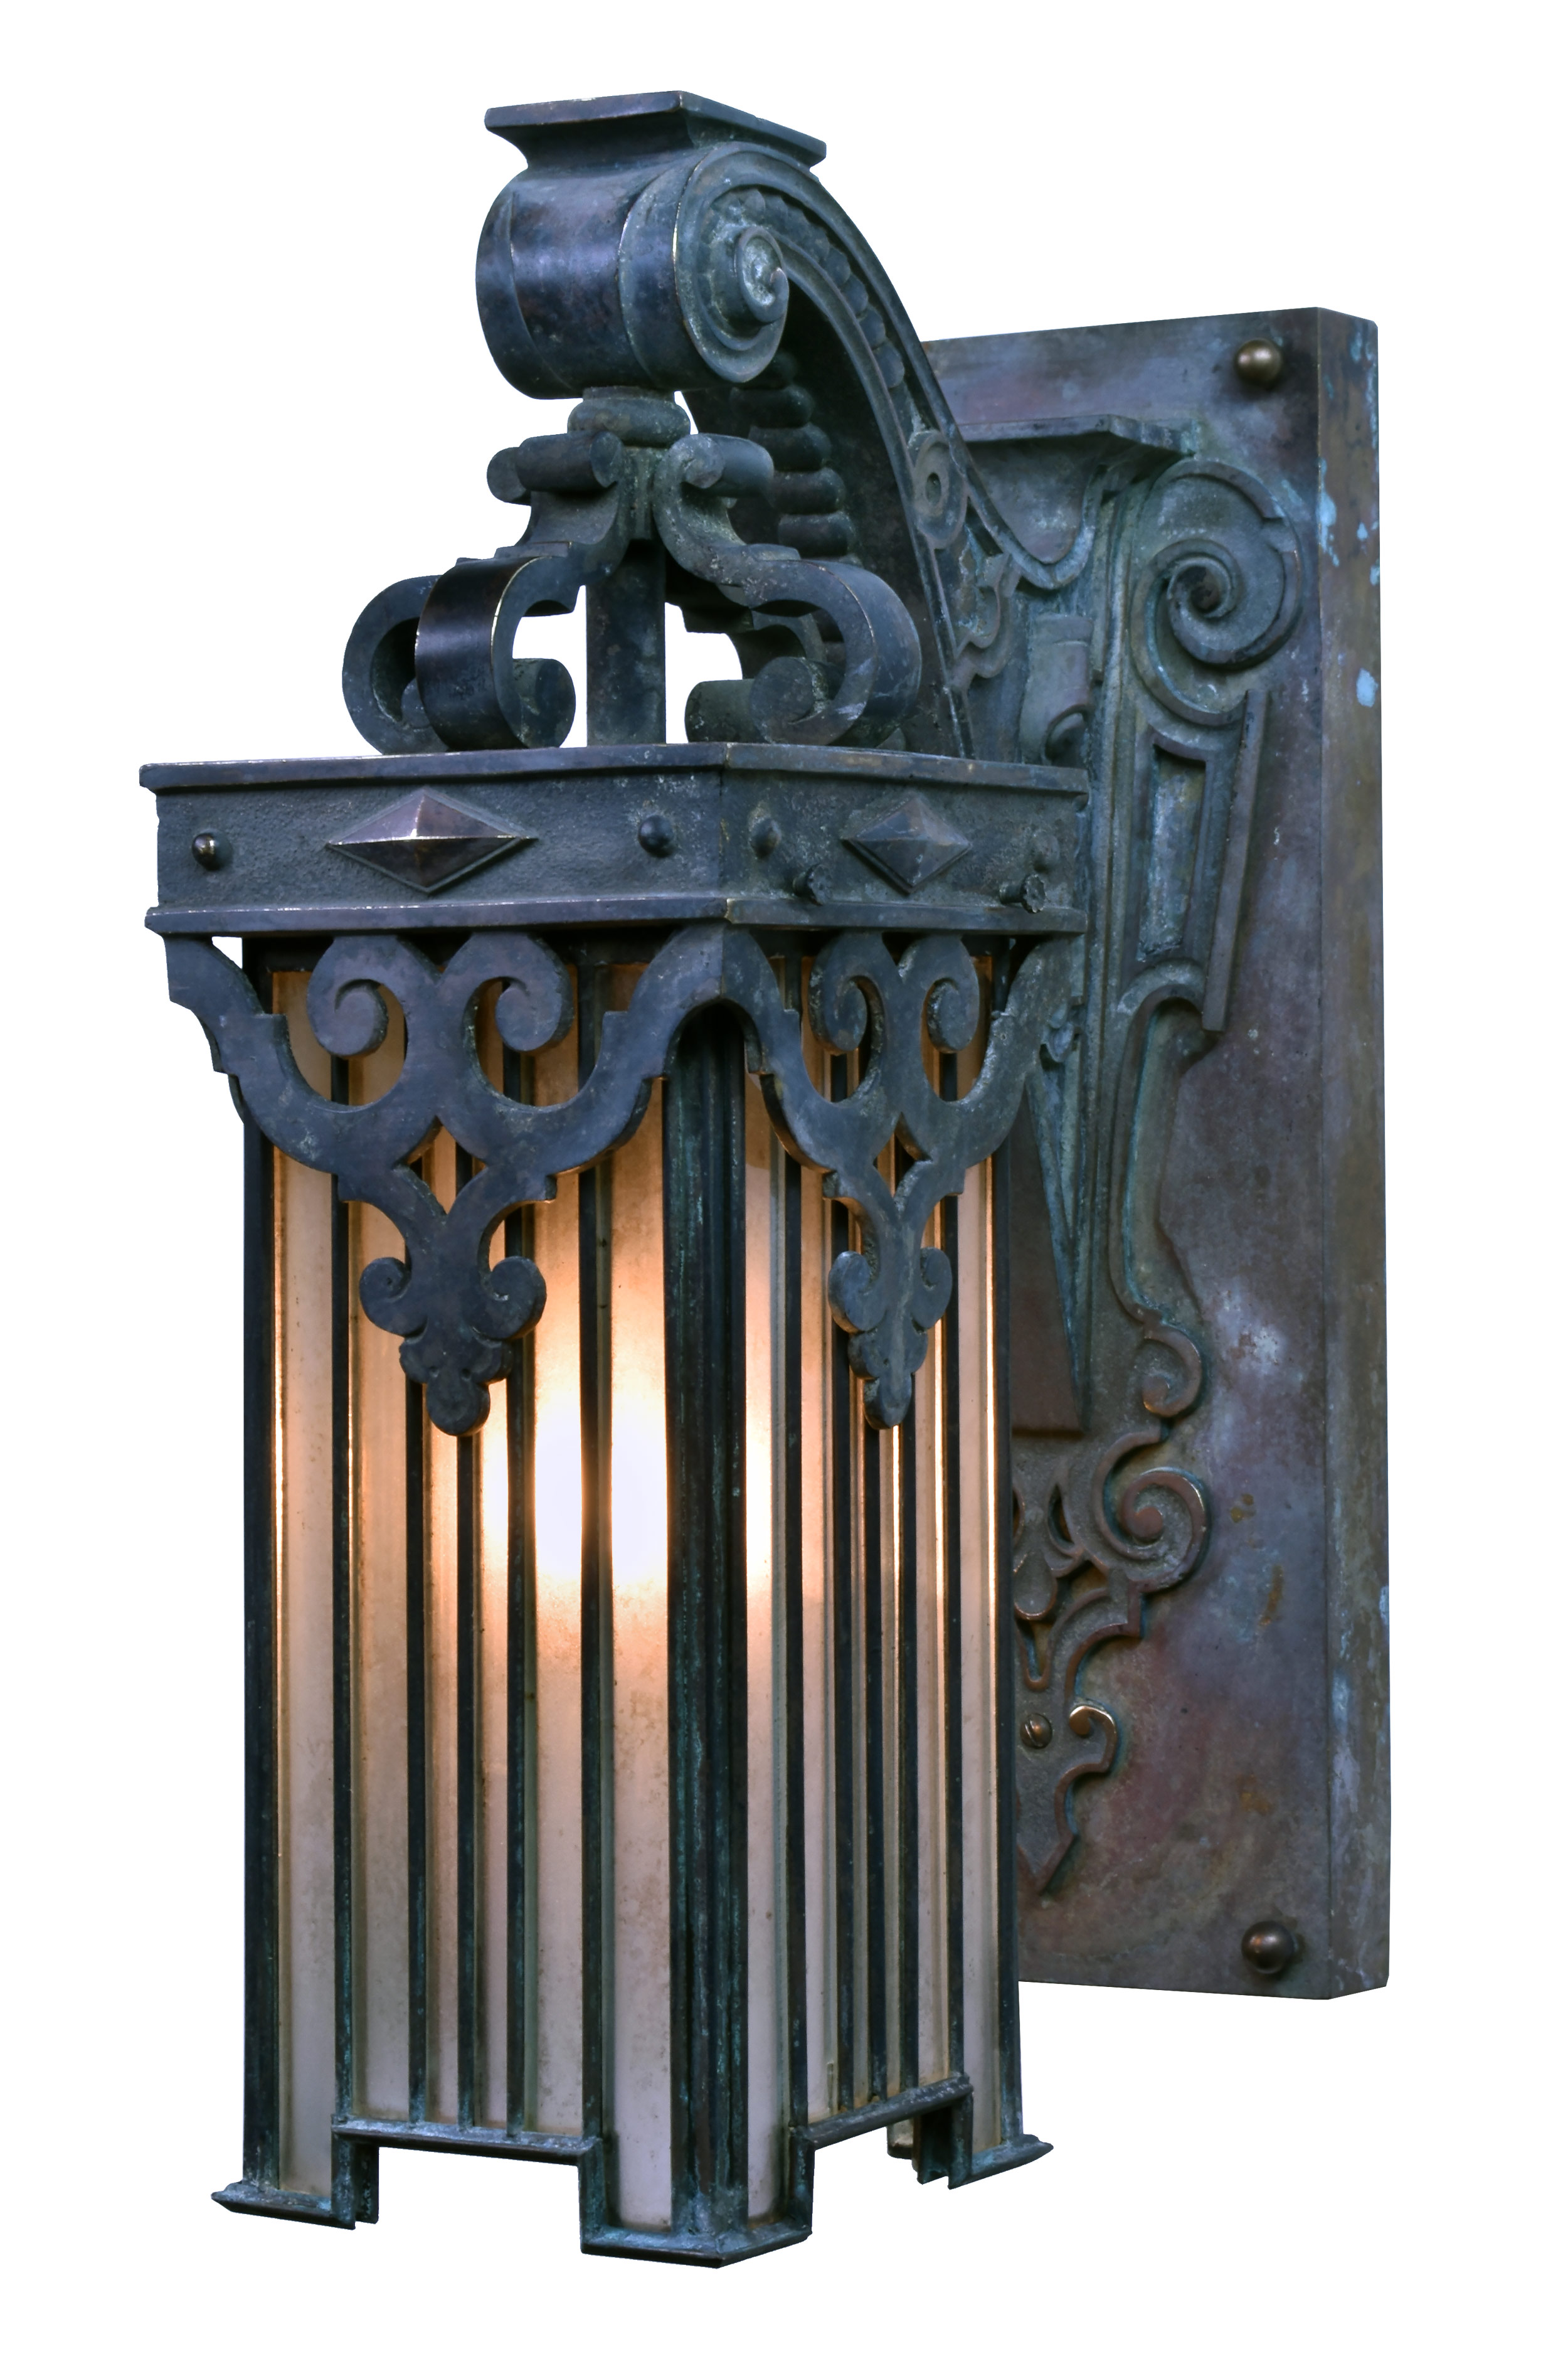 47236-cast-bronze-sconce-with-leaded-glass-shade-angle-lit.jpg